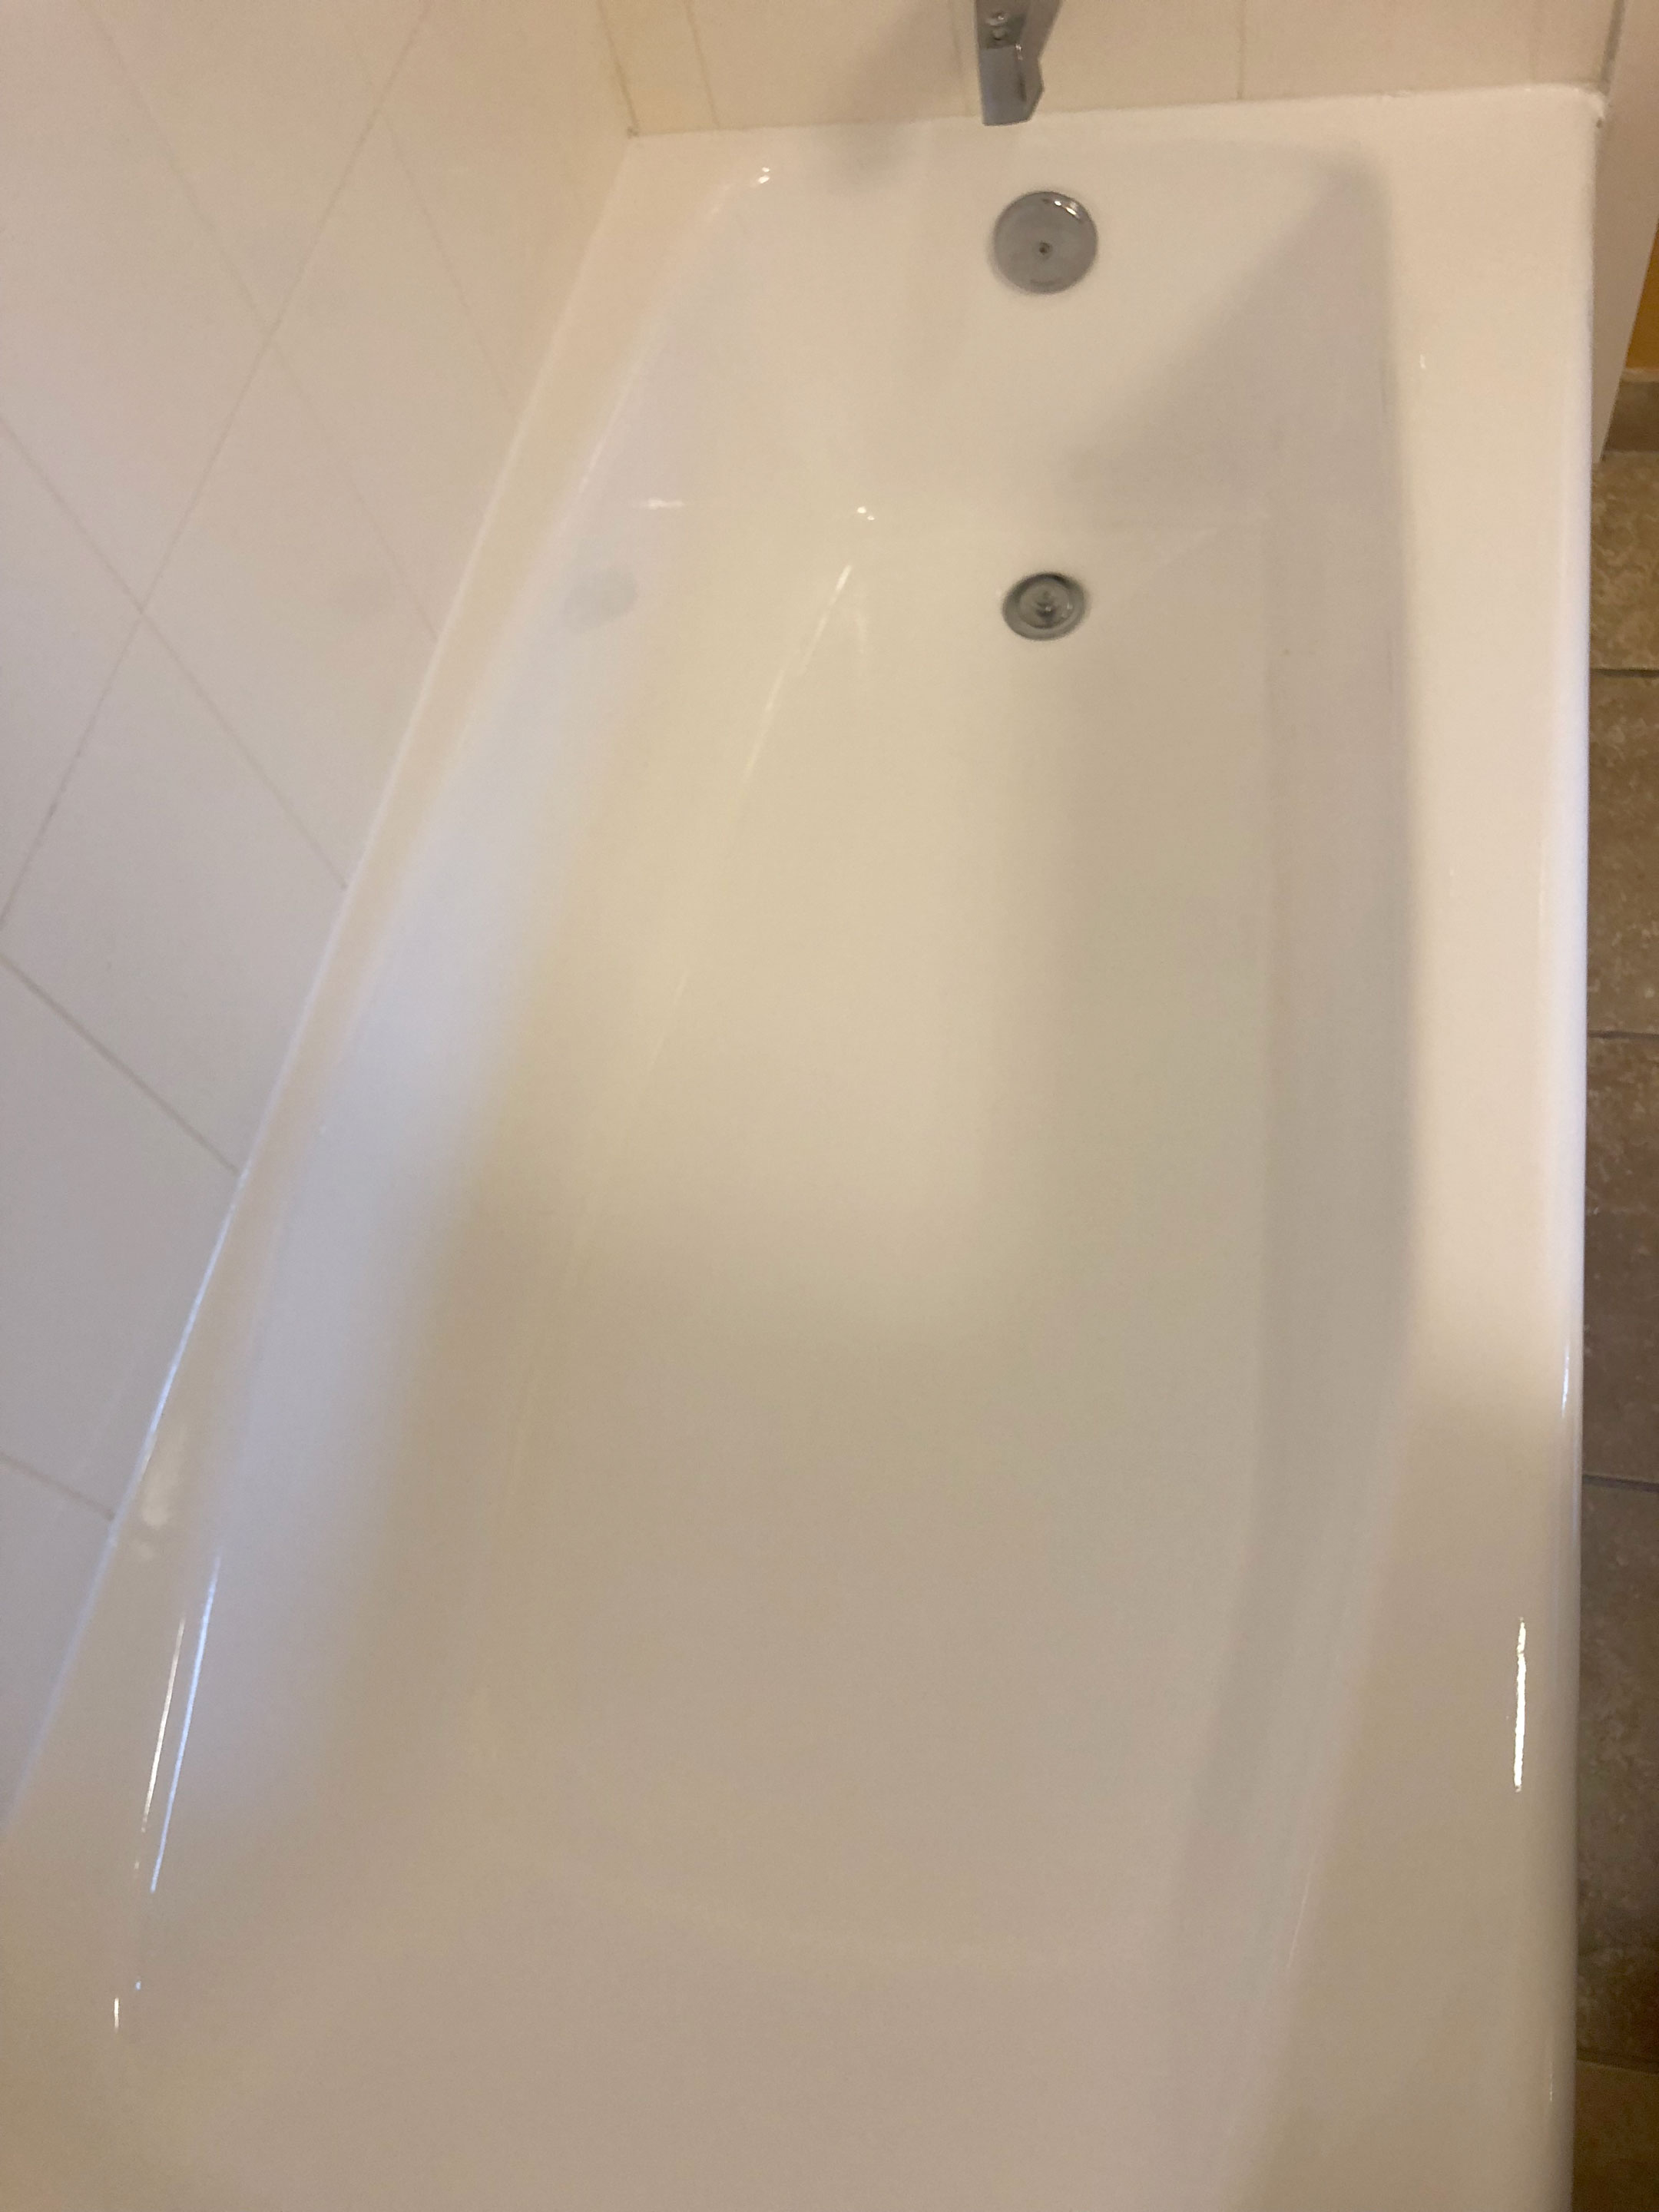 Chipped and peeling tub after